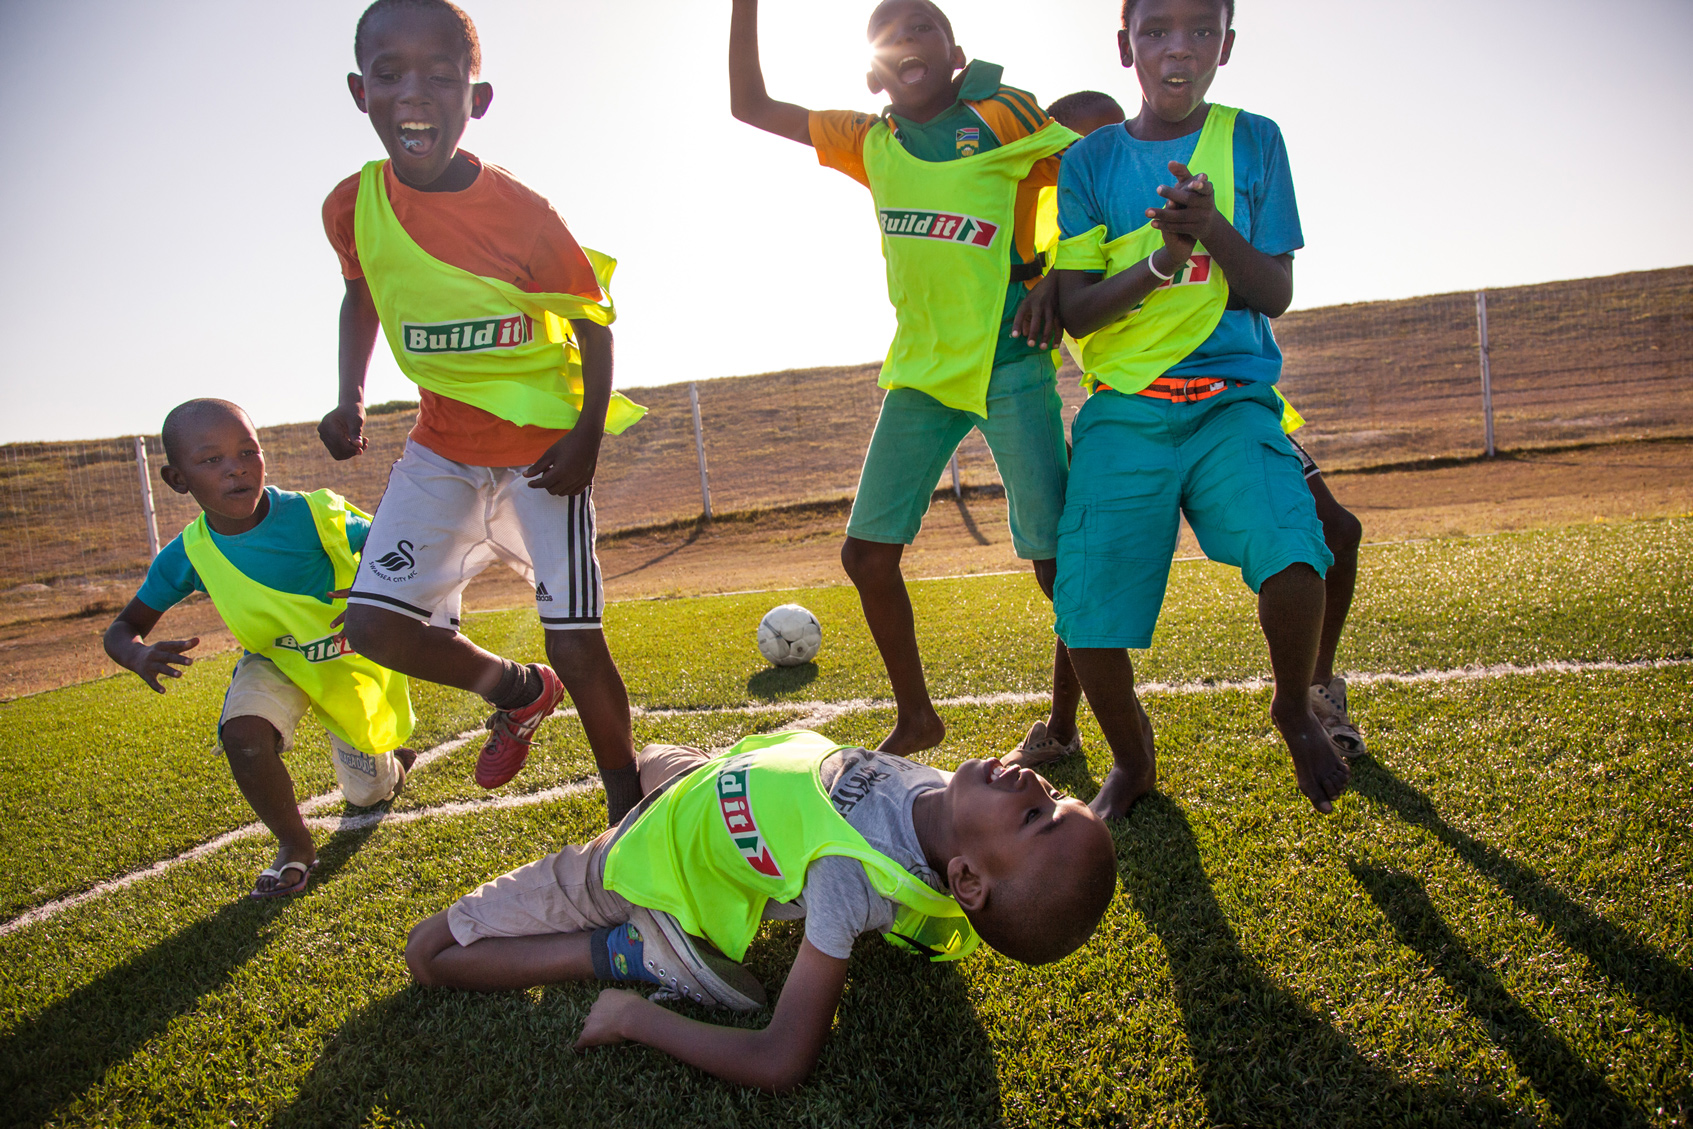 A group of children cheering on a soccer field.